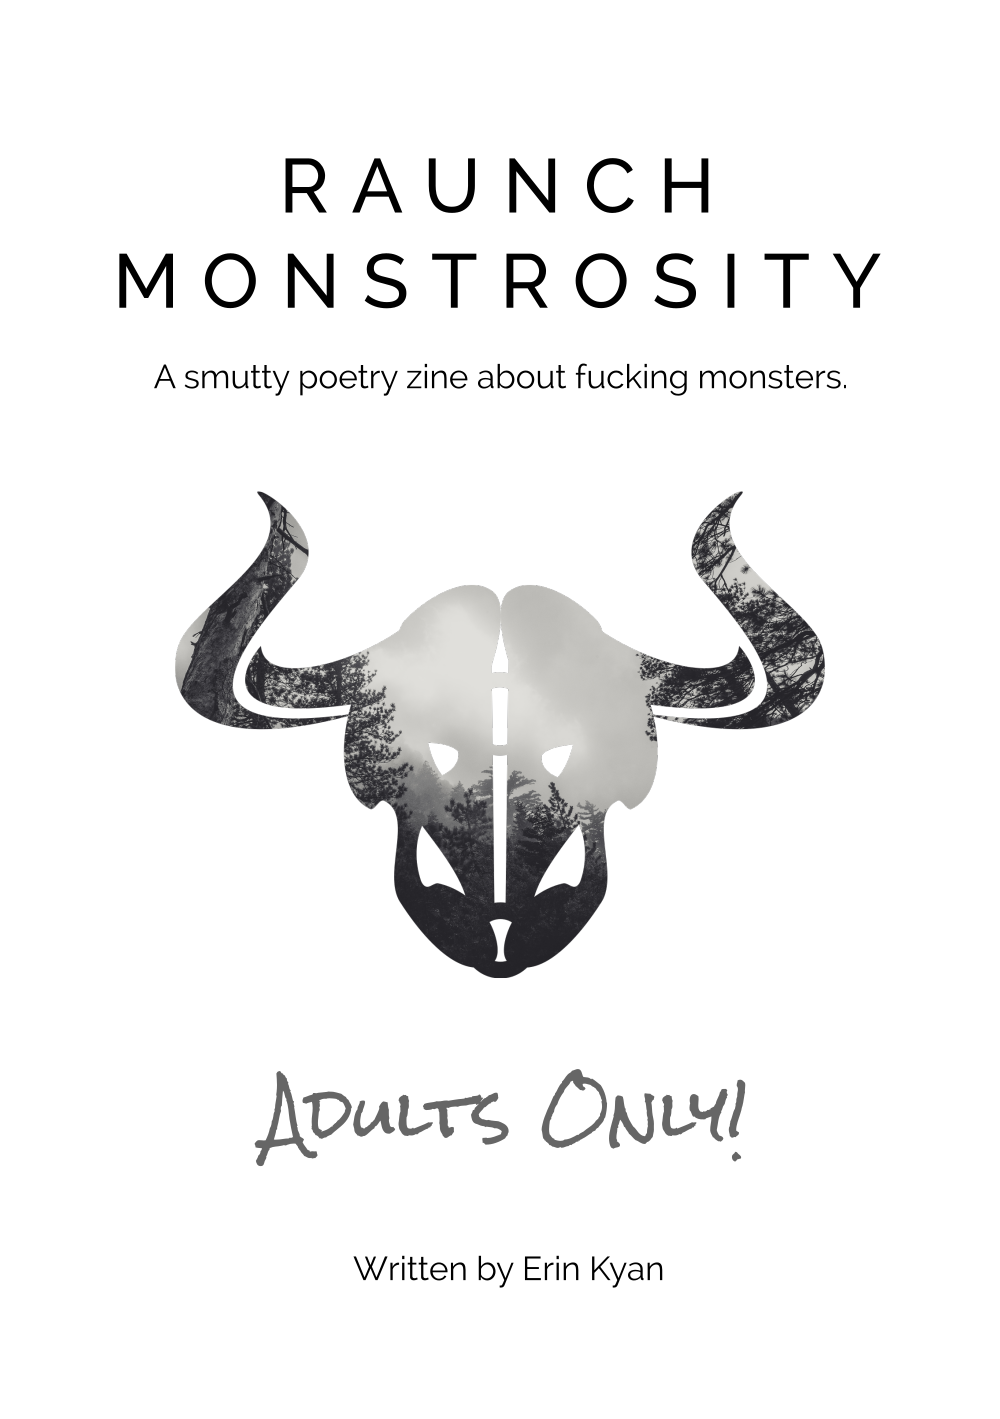 "The cover art for RAUNCH MONSTROSITY - It contains a stylized monster skull with a forest background embedded within it, along with the title ""Raunch Monstrosity"", the tagline ""A smutty poetry zine about fucking monsters"", a credit of ""Written by Erin Kyan"" and a large warning reading ""Adults Only!"""